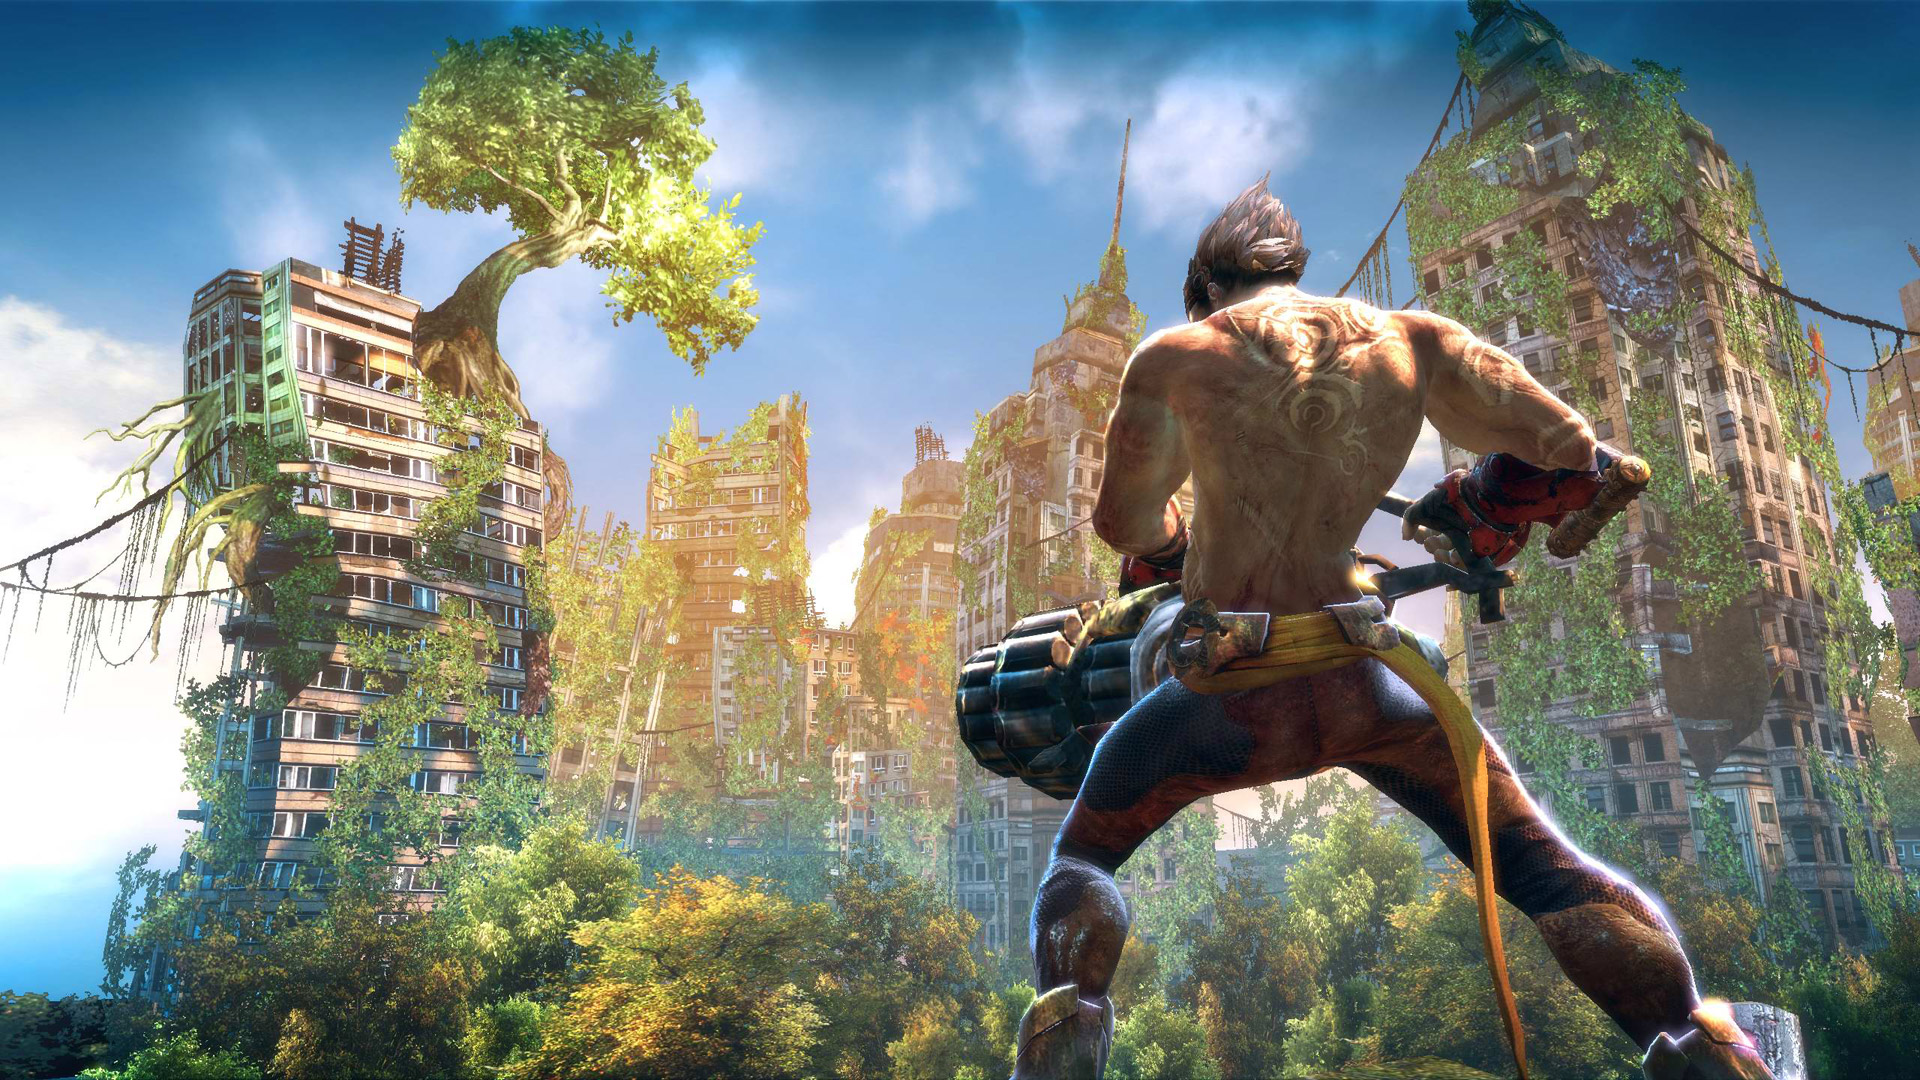 Free Enslaved: Odyssey to the West Wallpaper in 1920x1080